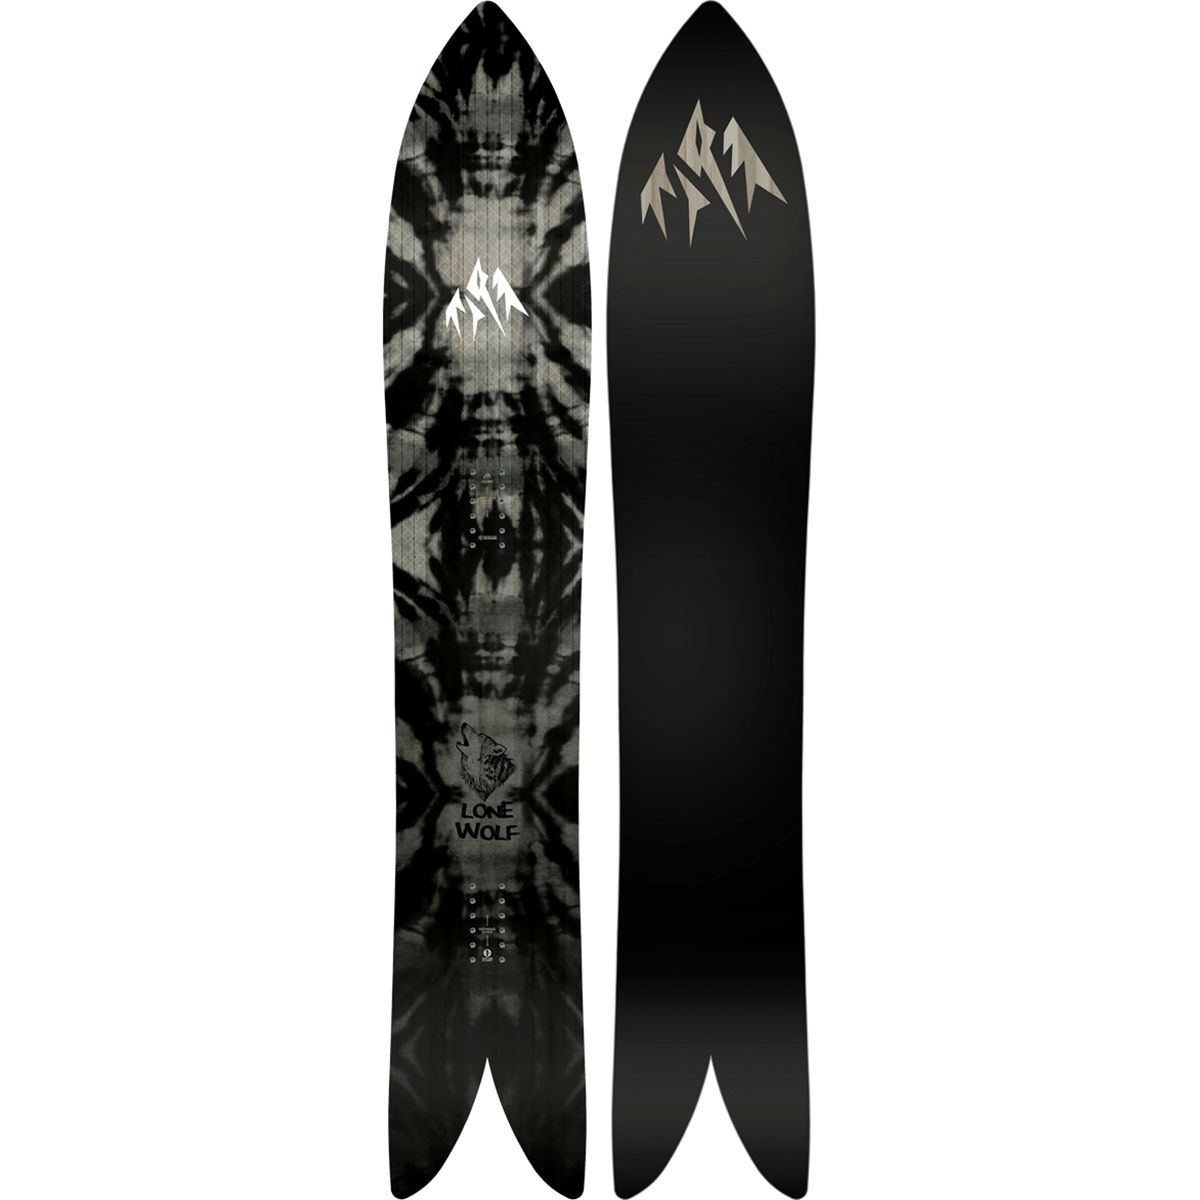 Jones Snowboards Lone Wolf Snowboard One Color, 168cm